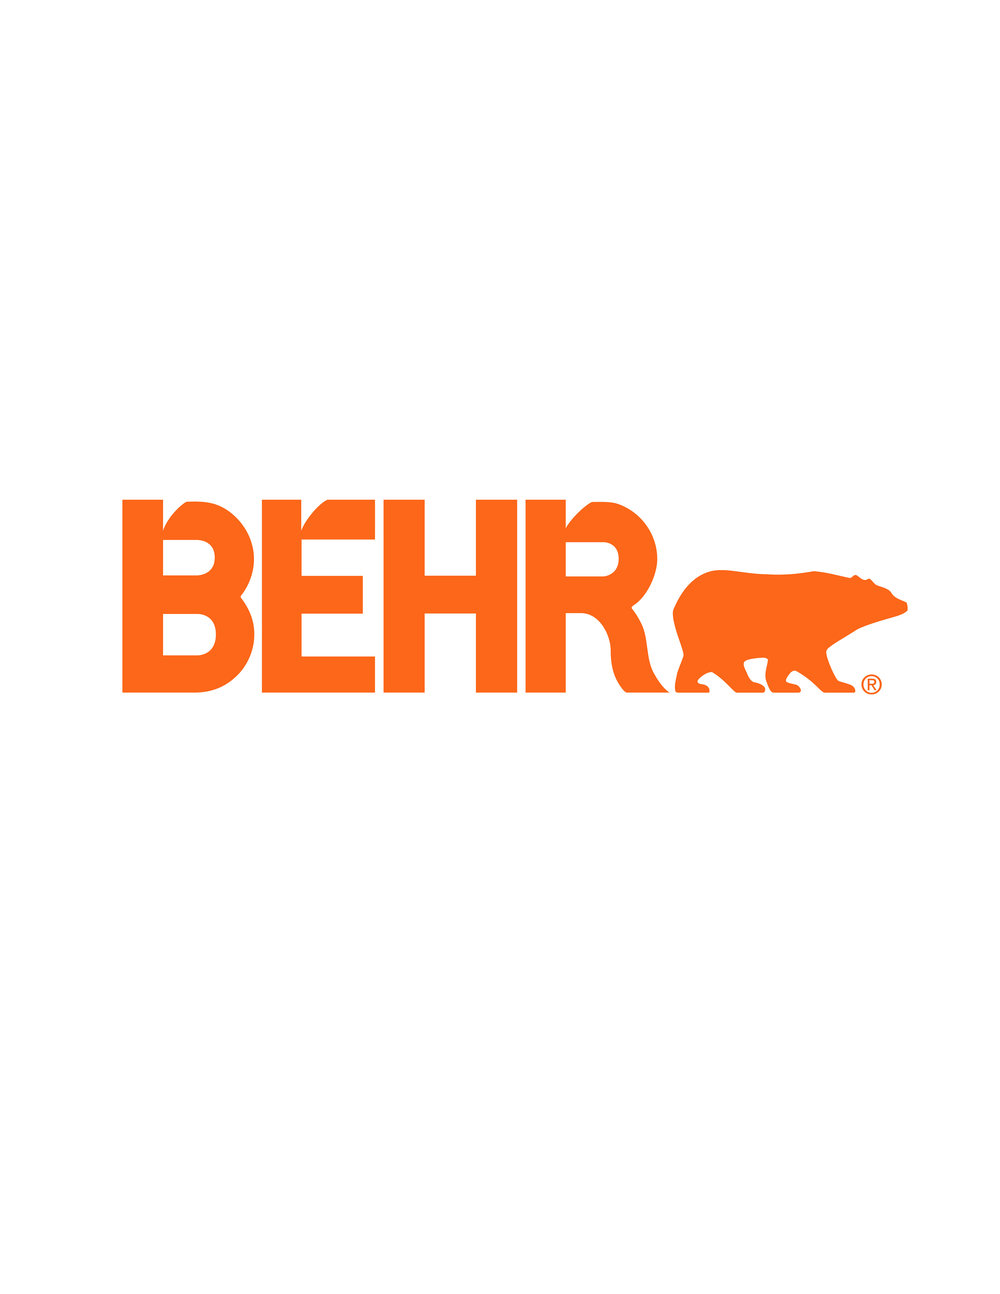 Behr Logo_165_US.jpeg